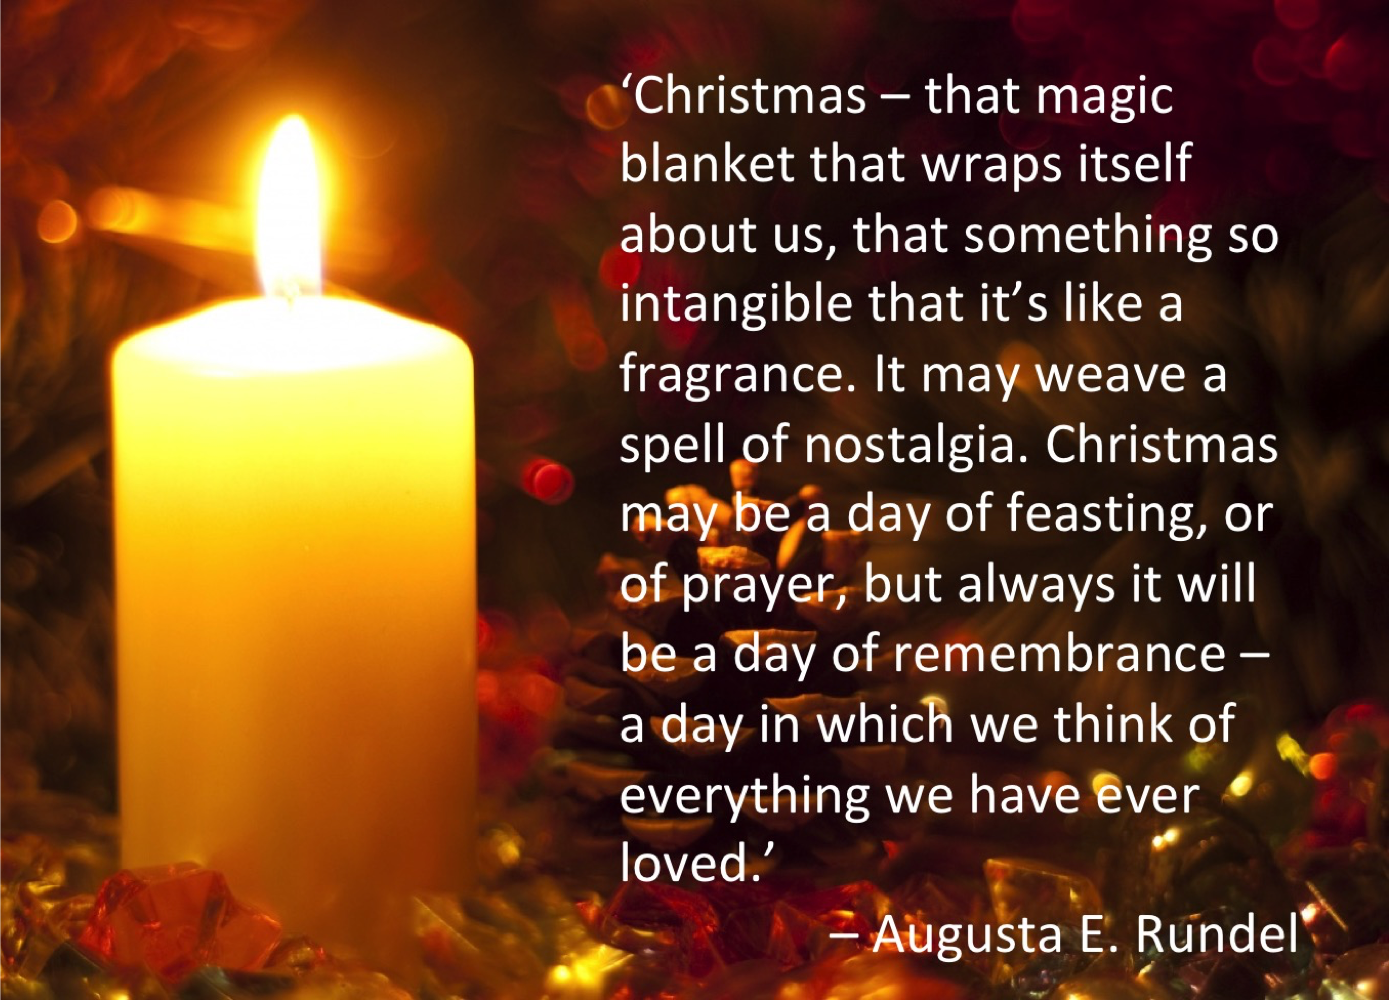 "Christmas Augusta E. Rundel quote.""Christmas--that magic blanket that wraps itself about us, that something so intangible that it is like a fragrance. It may weave a spell of nostalgia. Christmas may be a day of feasting, or of prayer, but always it will be a day of remembrance--a day in which we think of everything we have ever loved."" -Augusta E. Rundel"